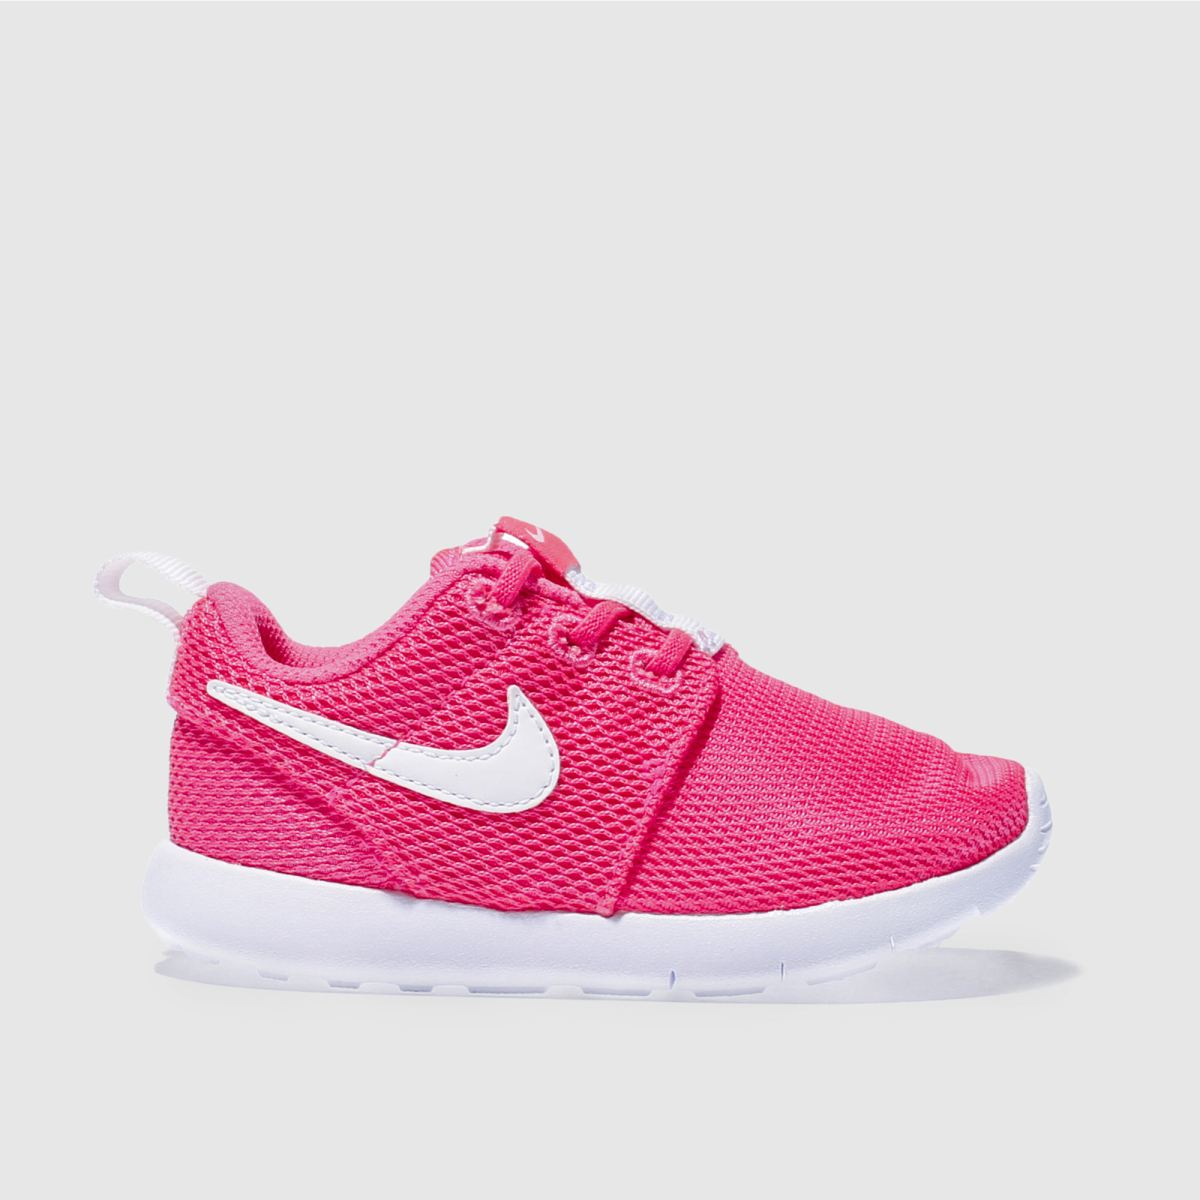 nike pink roshe one Girls Toddler Trainers